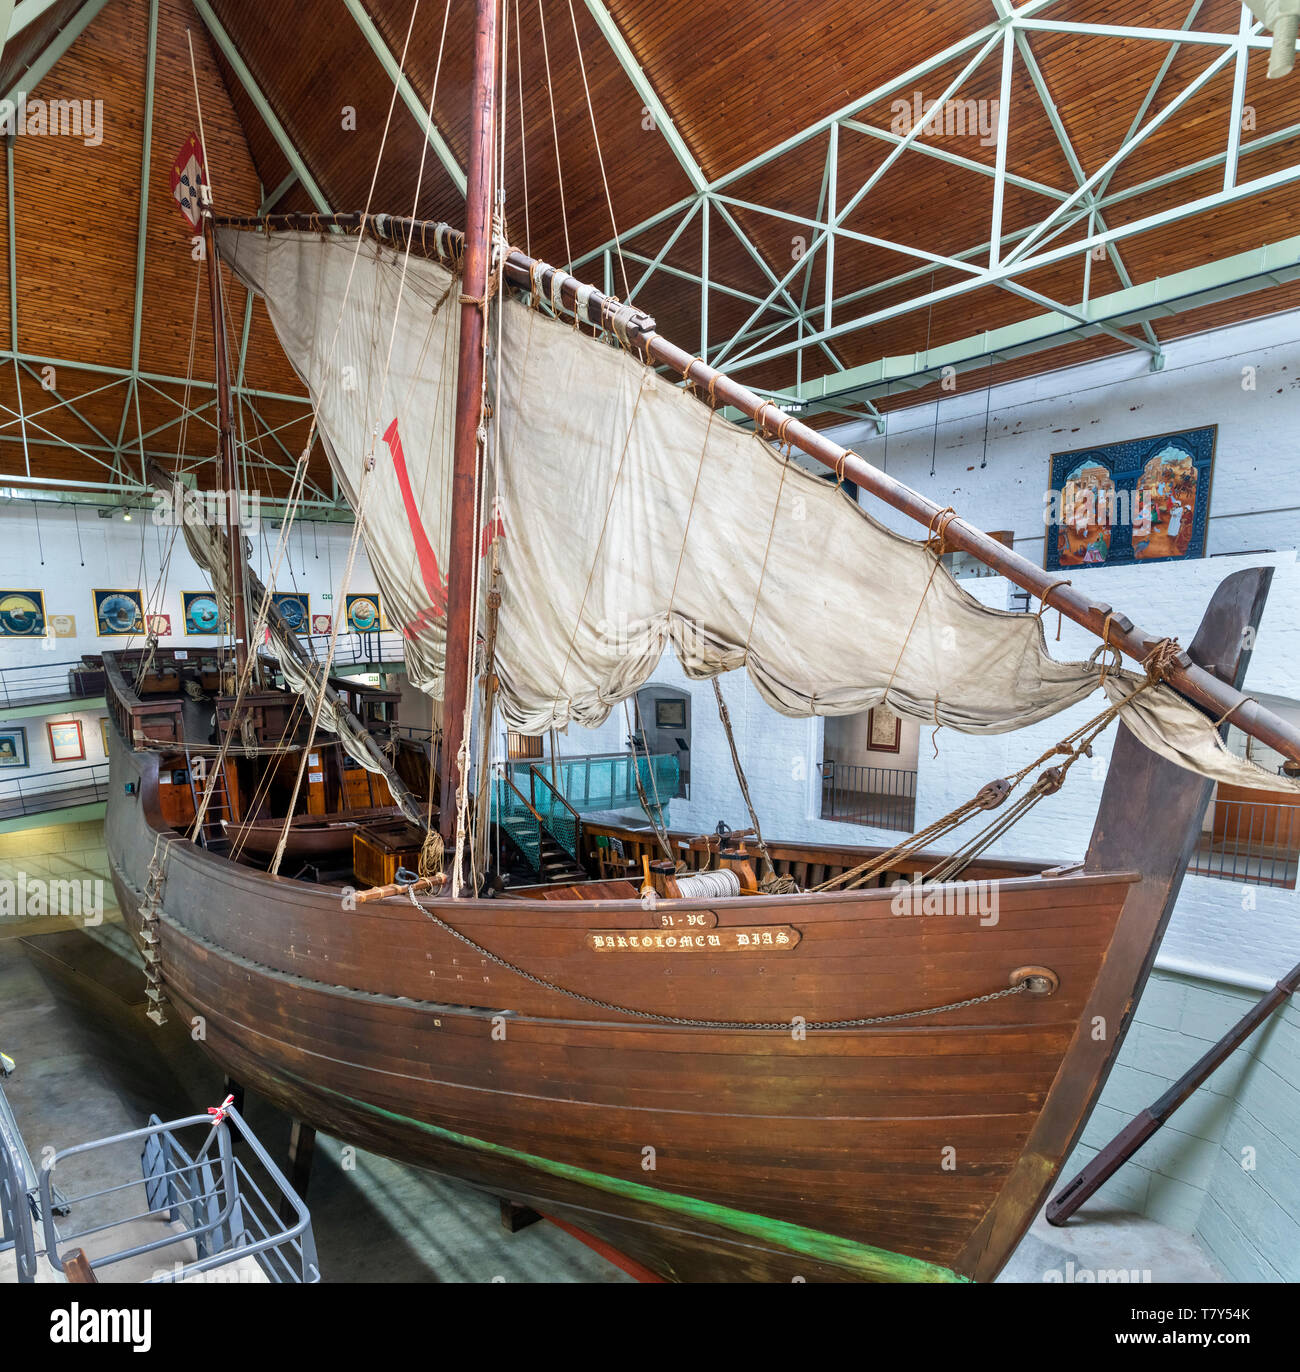 Replica of the caravel used by Bartolomeu Dias, Dias Museum Complex, Mossel Bay, Garden Route, Western Cape, South Africa - Stock Image